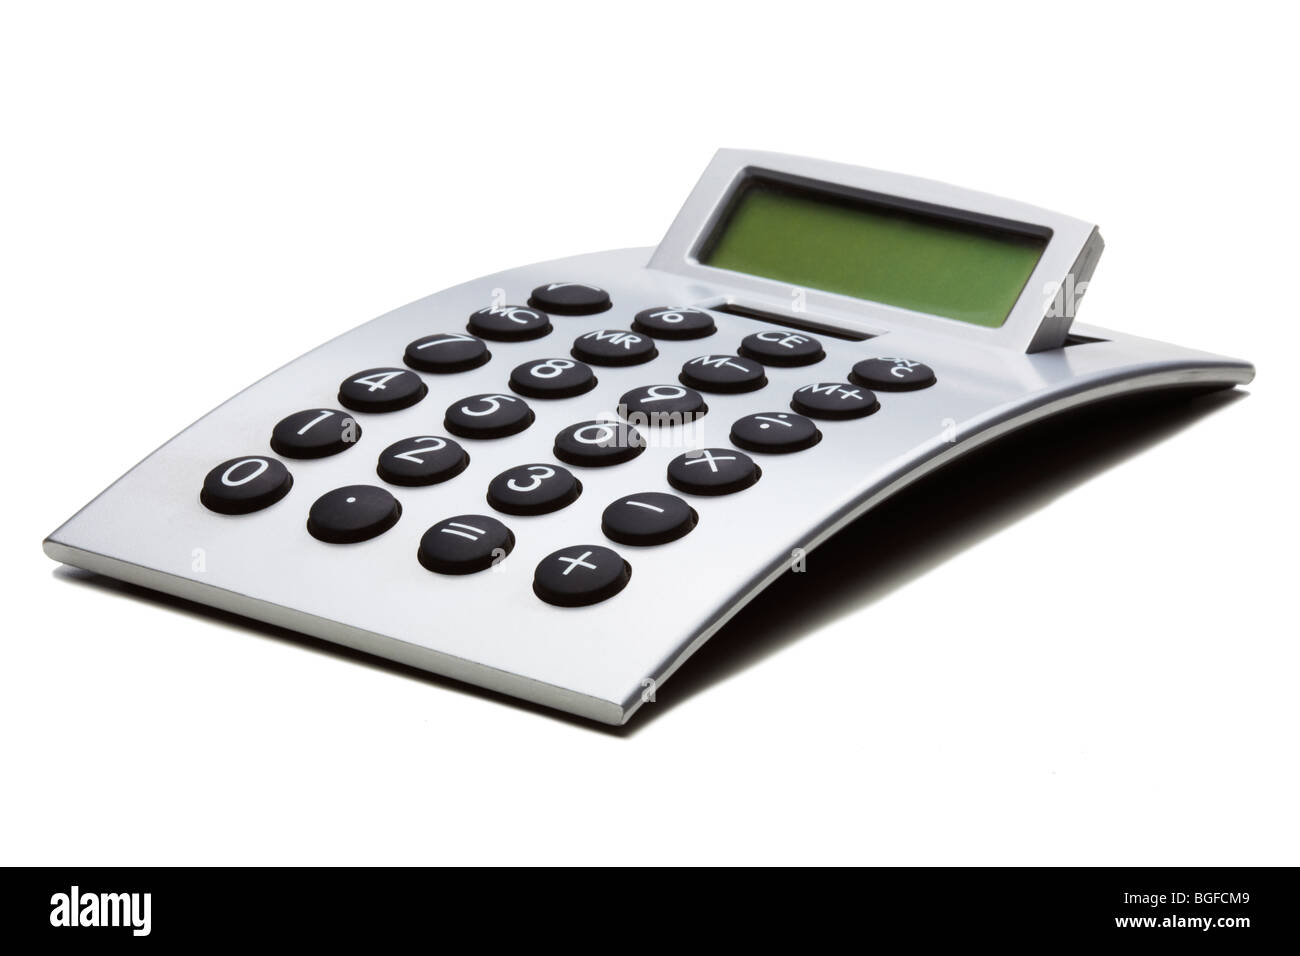 Silver Curved Calculator - Stock Image